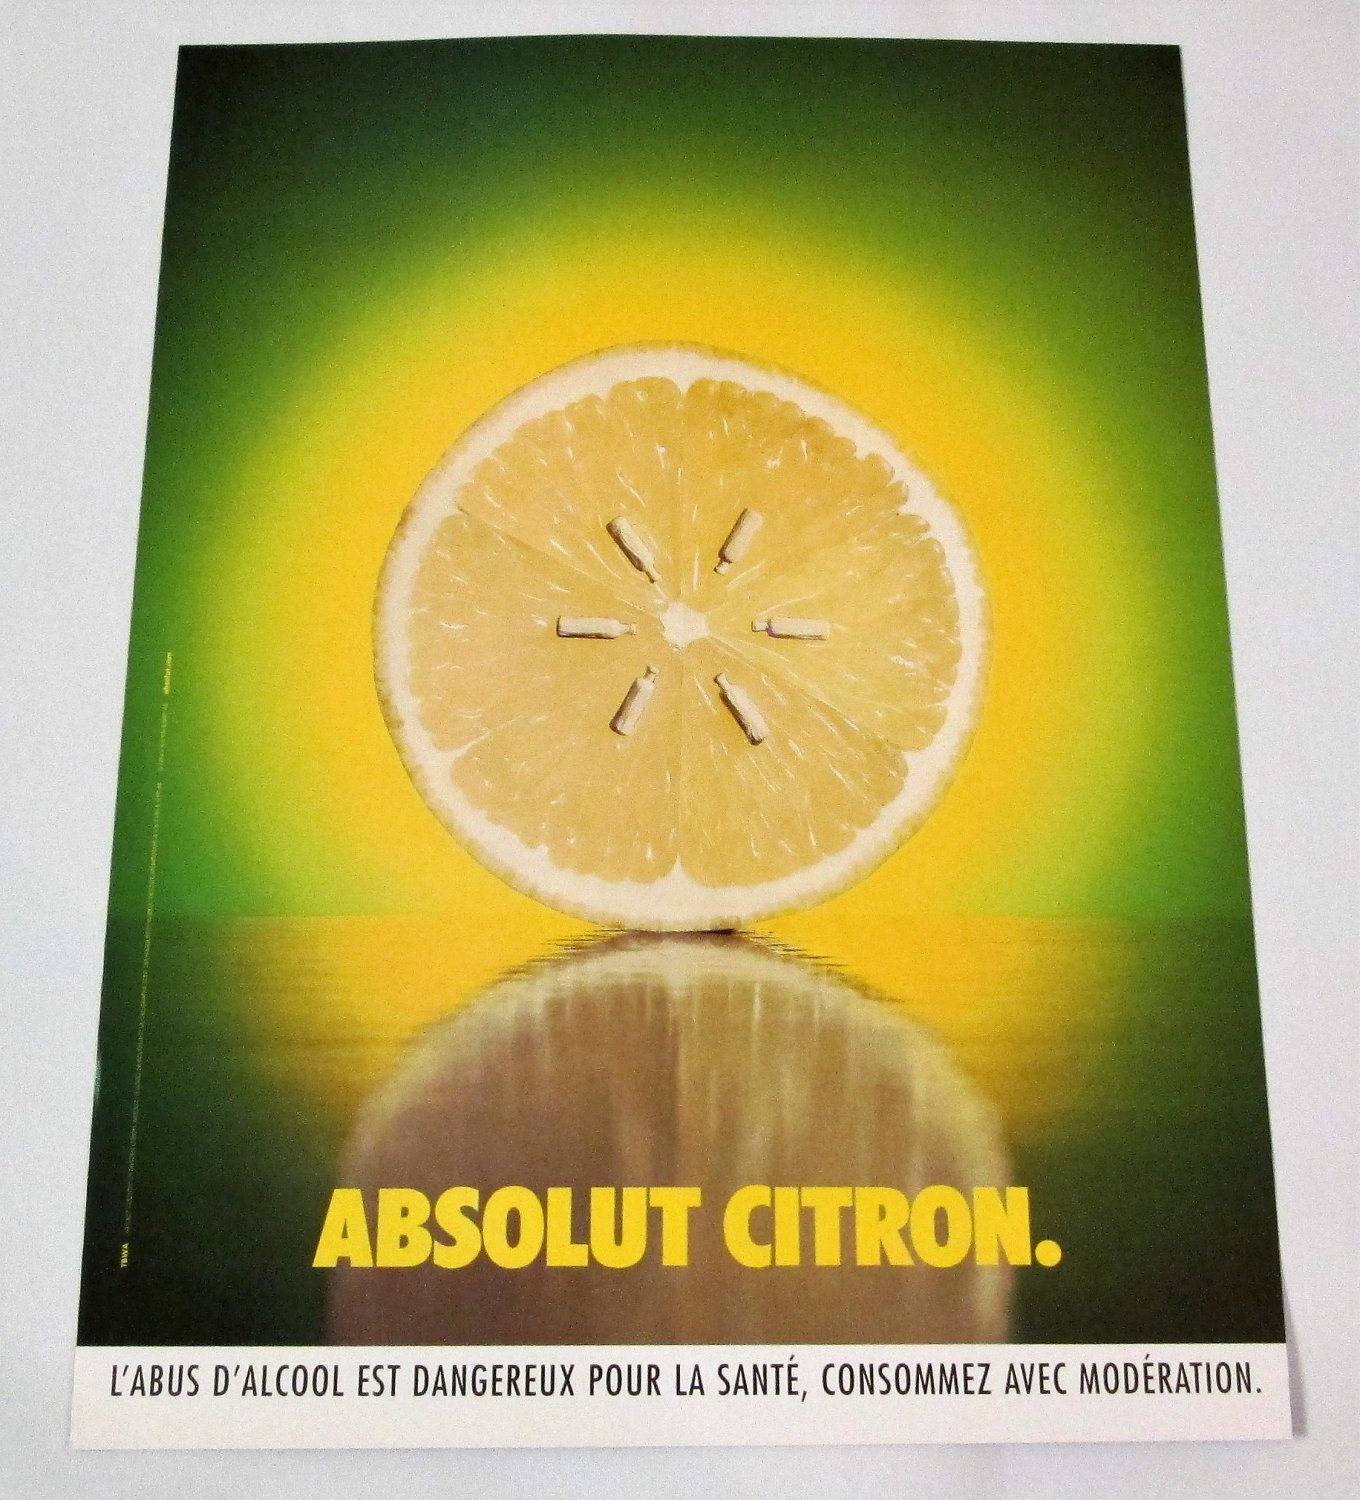 ABSOLUT CITRON (Seeds Version) French Vodka Magazine Ad RARE!